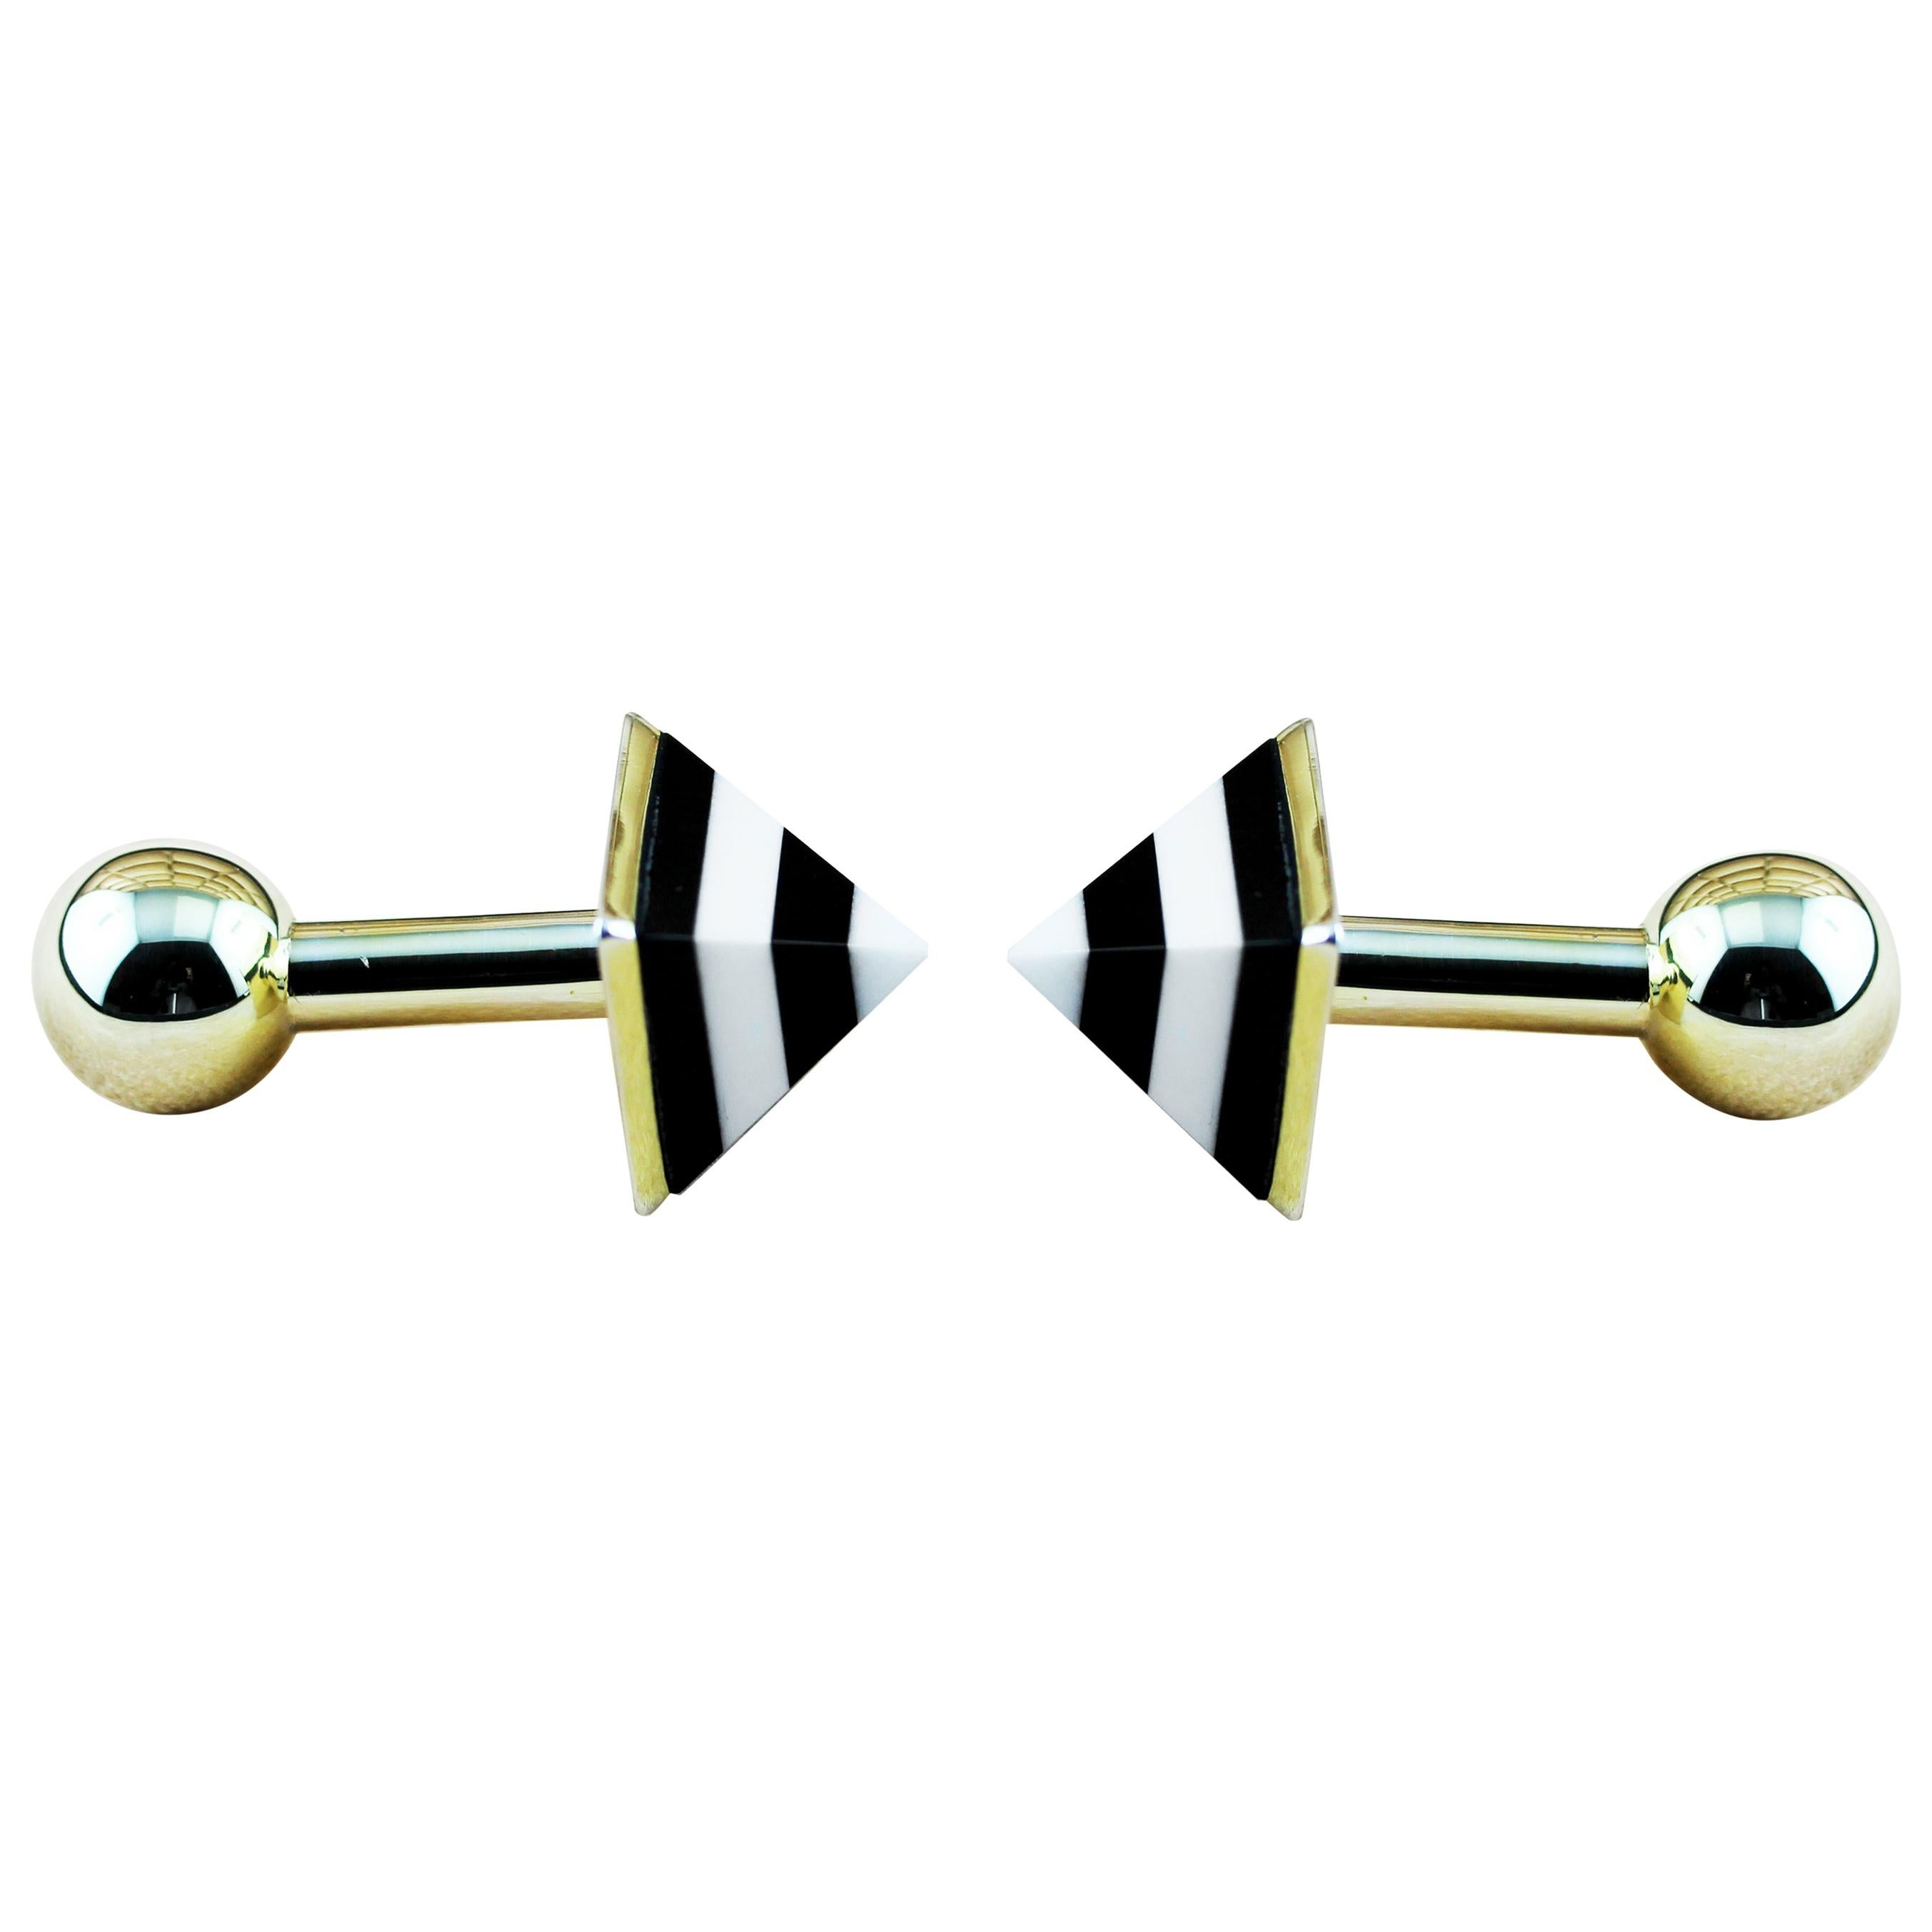 925 Silver 18 Karat Yellow Gold-Plated White Agate and Onyx Pyramid Cufflinks